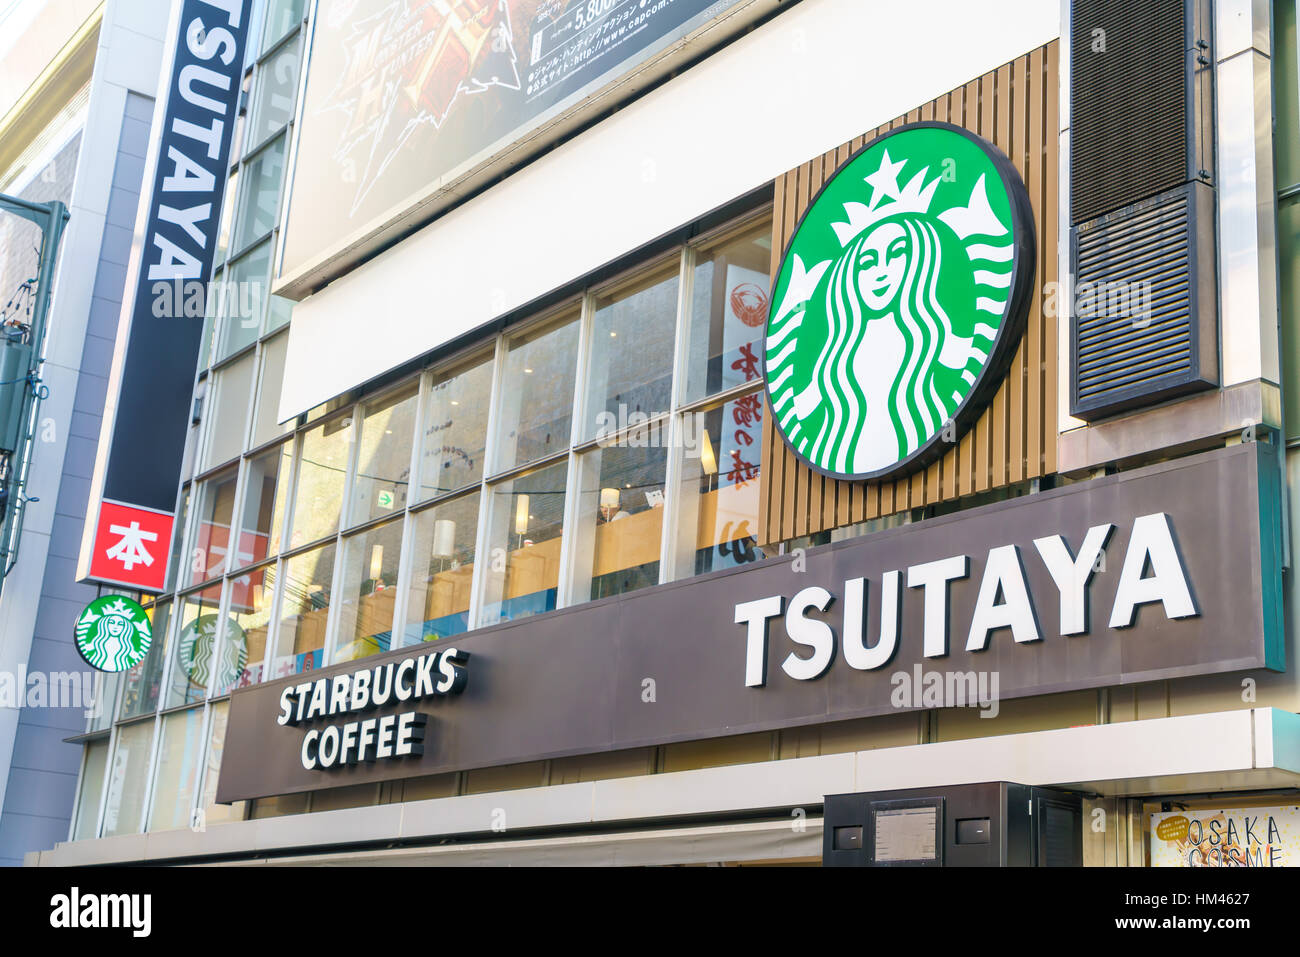 Tokyo Japan 24 November 2015 Starbucks Coffee Background Stock